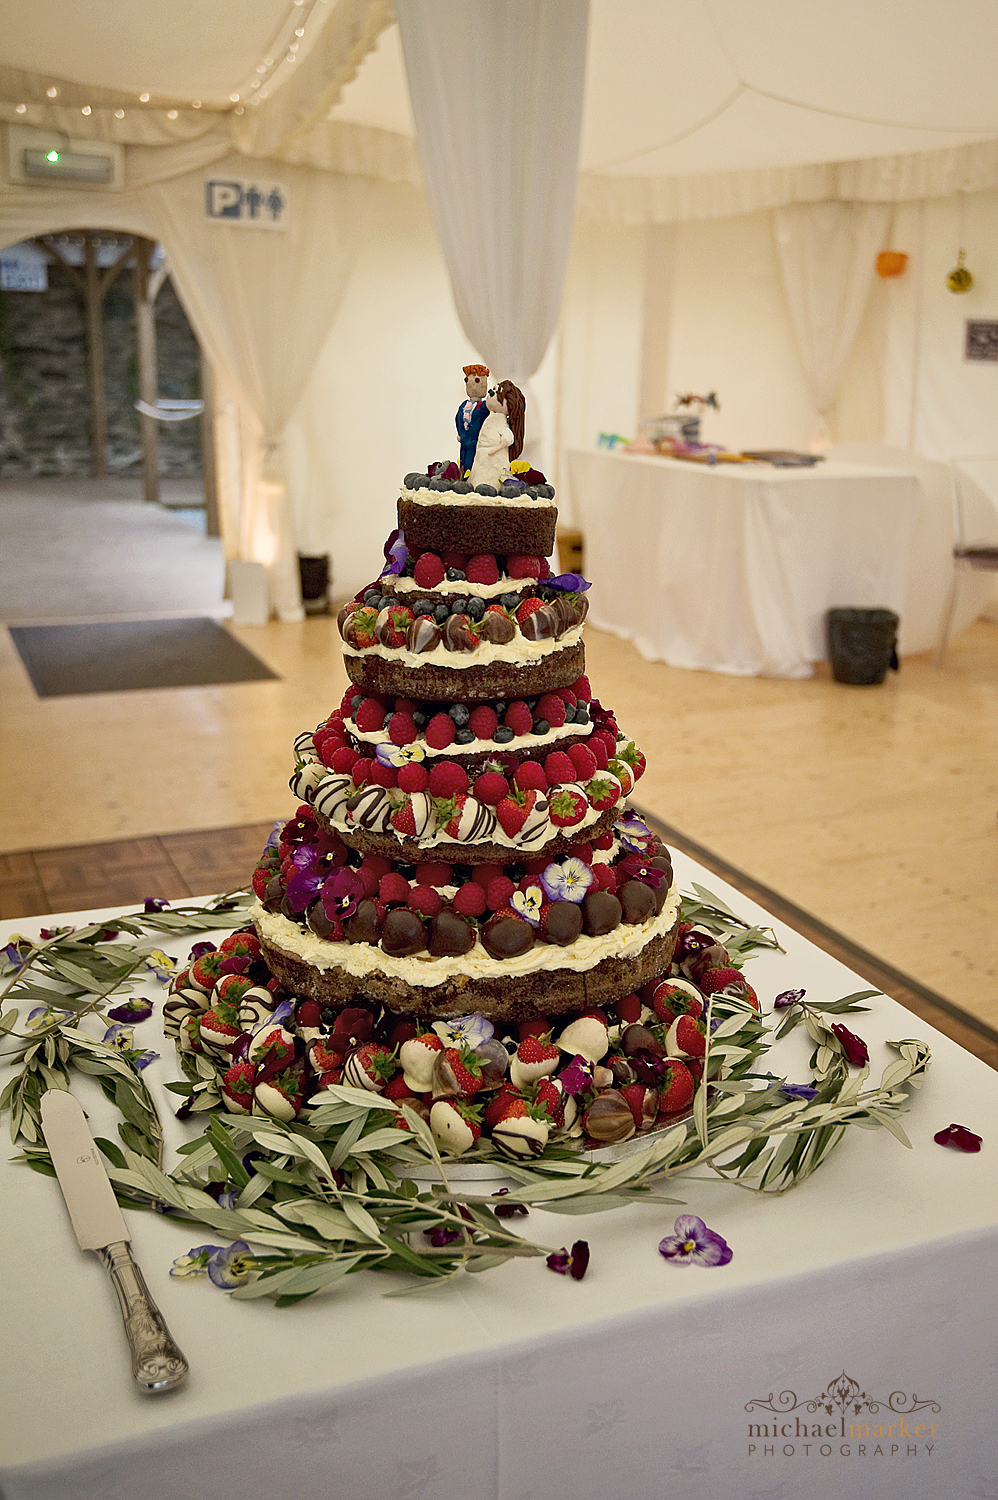 Shilstone-wedding-chocolate-cake